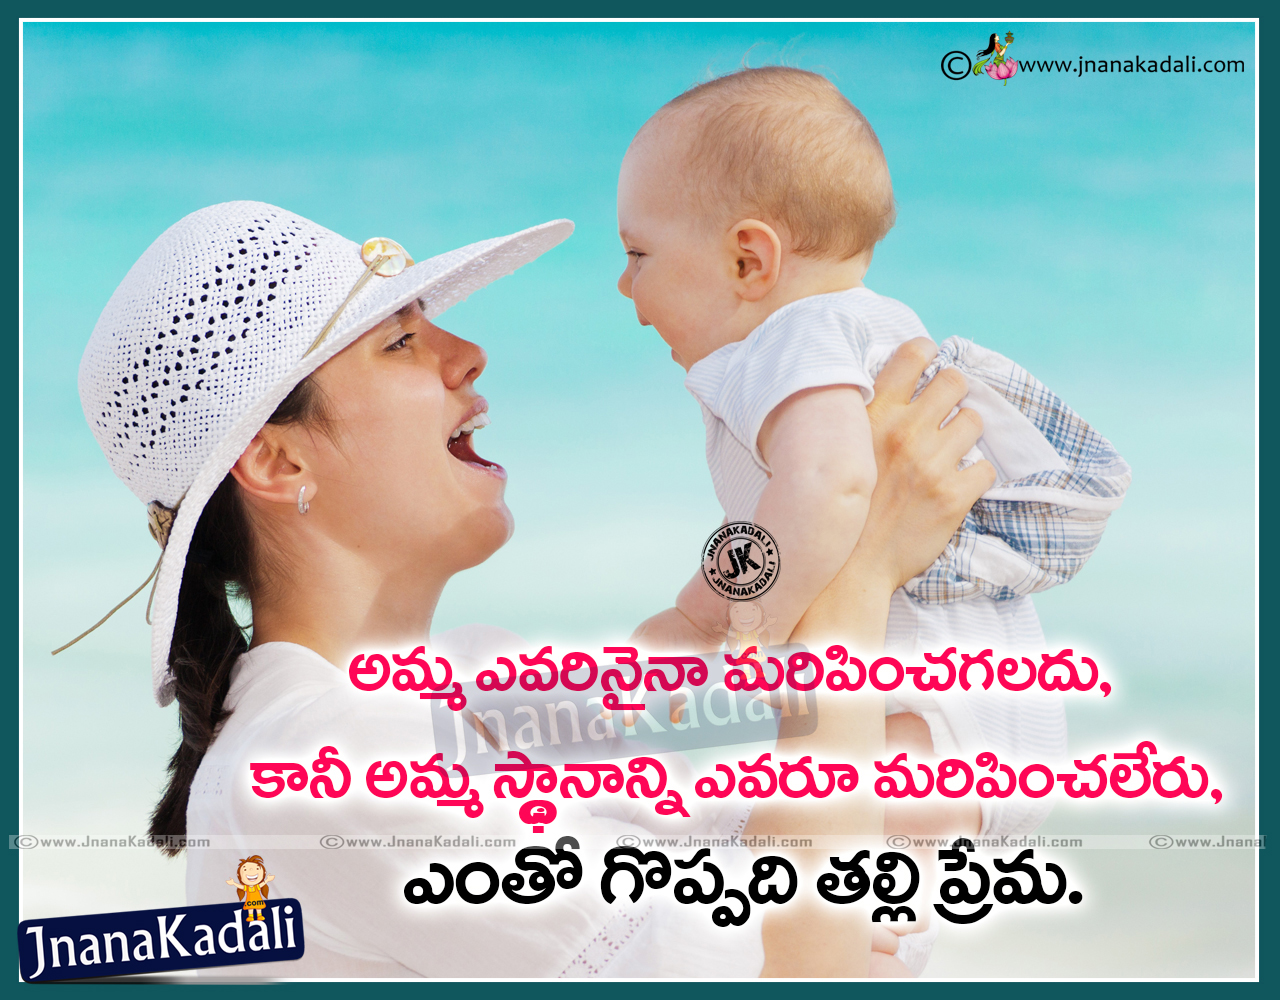 Mother Images With Quotes In Telugu With Cute Baby And Mother Hd